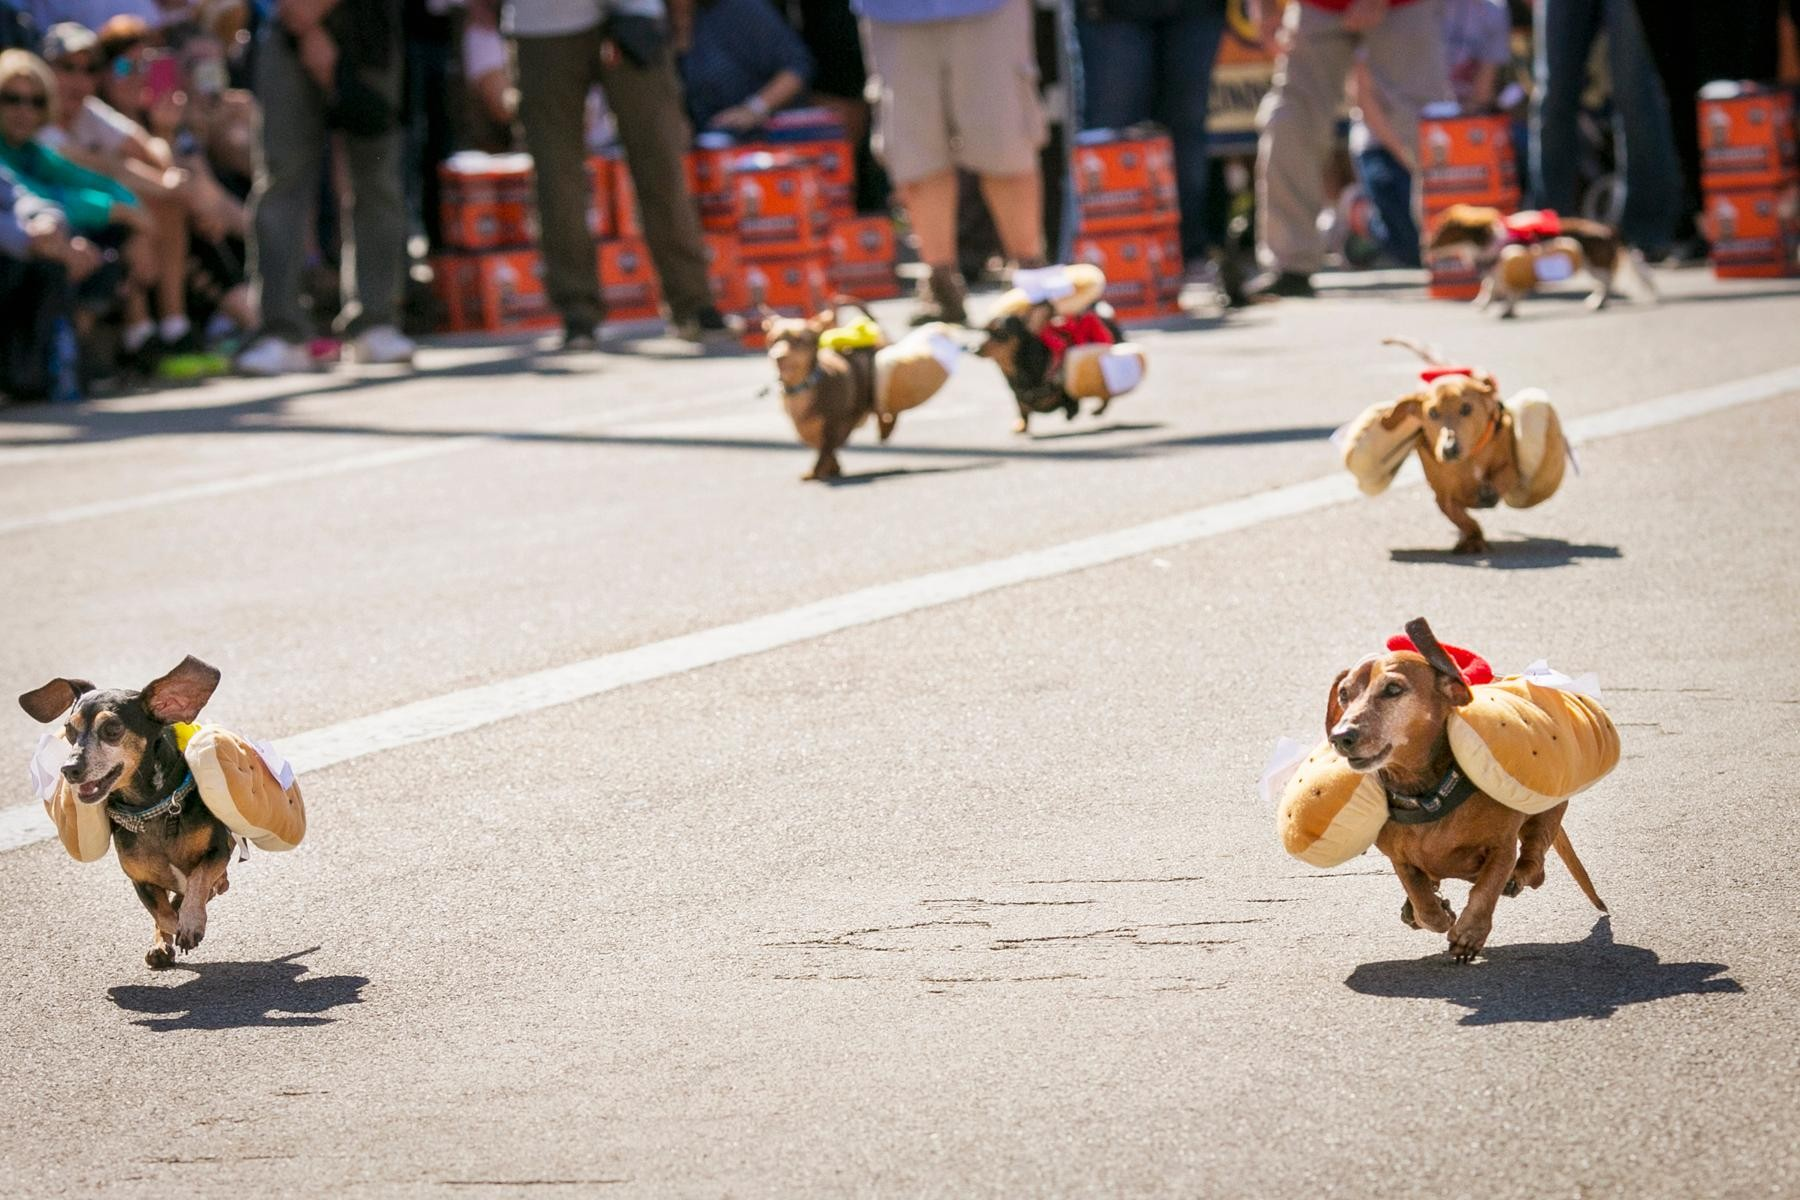 Event: Wiener Dog Race (9.15.17) / Image: Mike Bresnen Photography / Published: 10.1.17